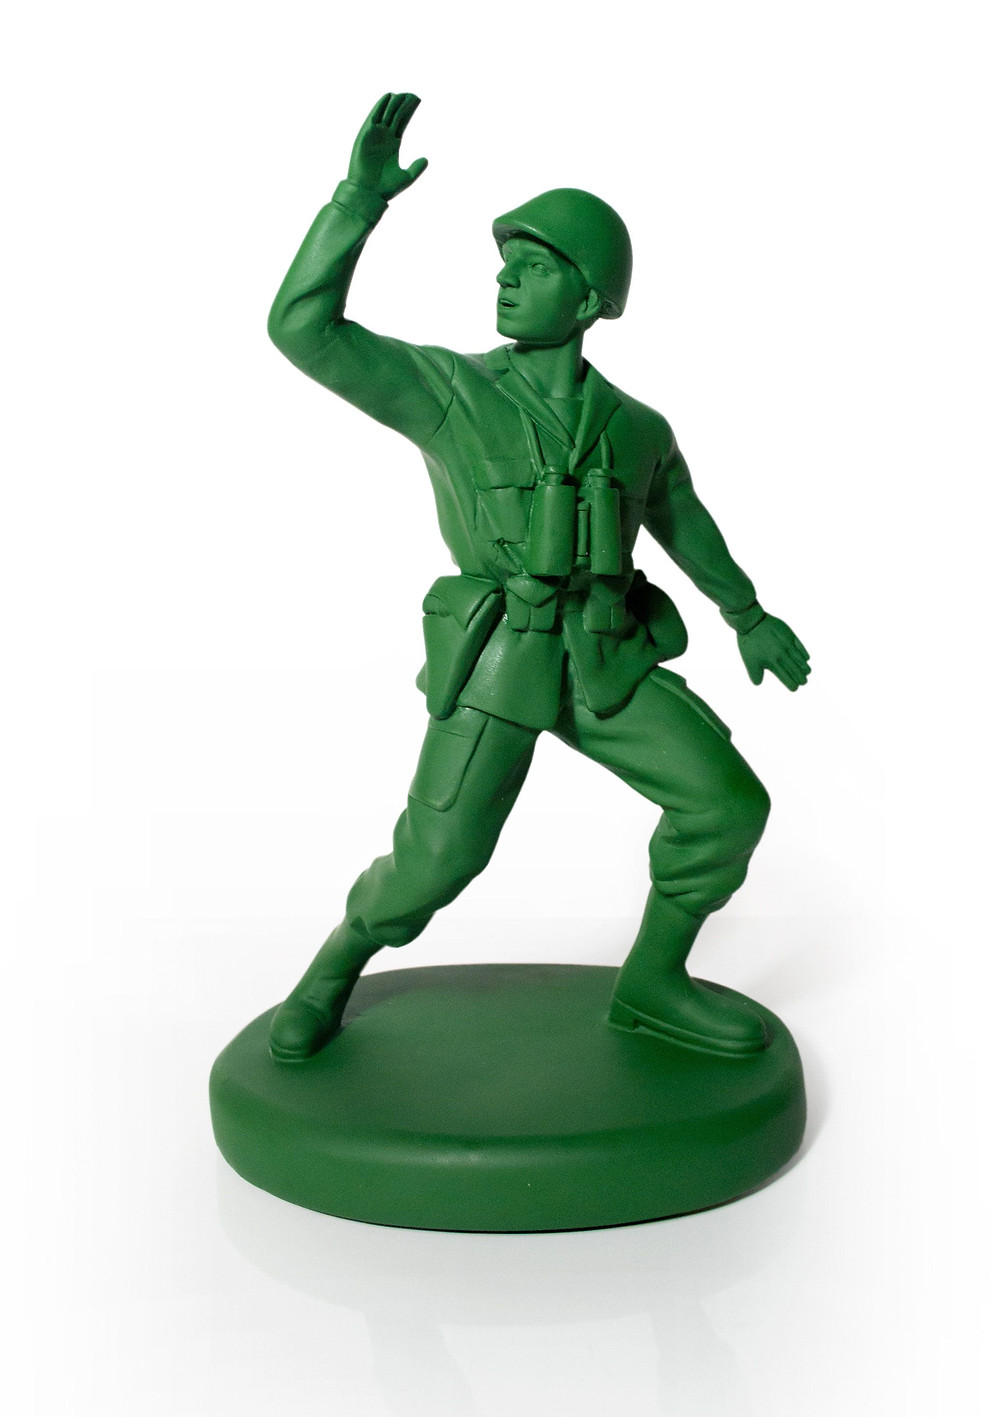 Klassic Karen Toy Soldier costume as an Easy Craft Ideas For Kids To Make At Home